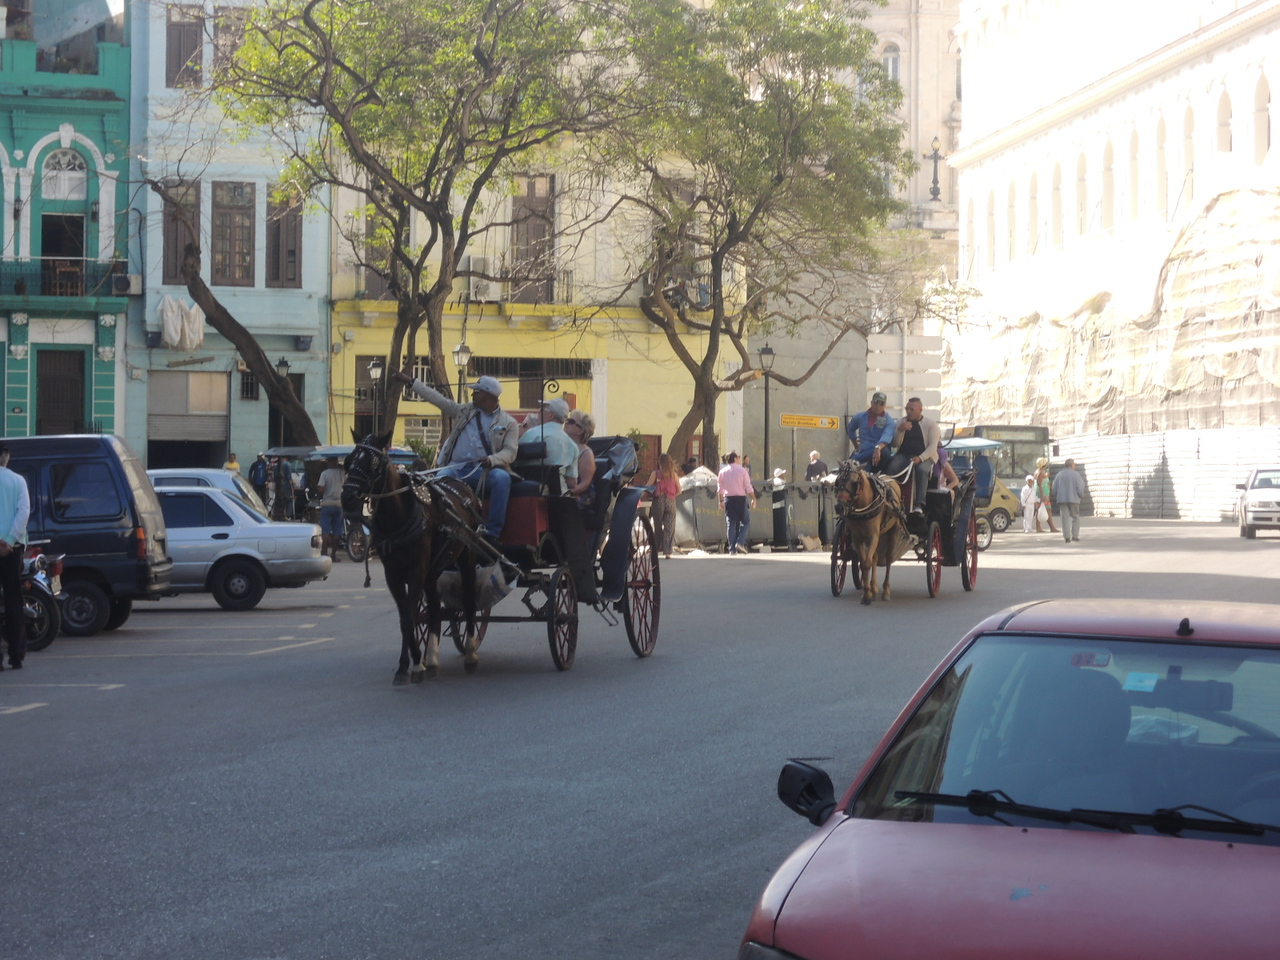 There are many modes of tranportation in Havana.  In this picture you can see horse-drawn carriages, cars, motorcycles, cars, buses, and people walking.